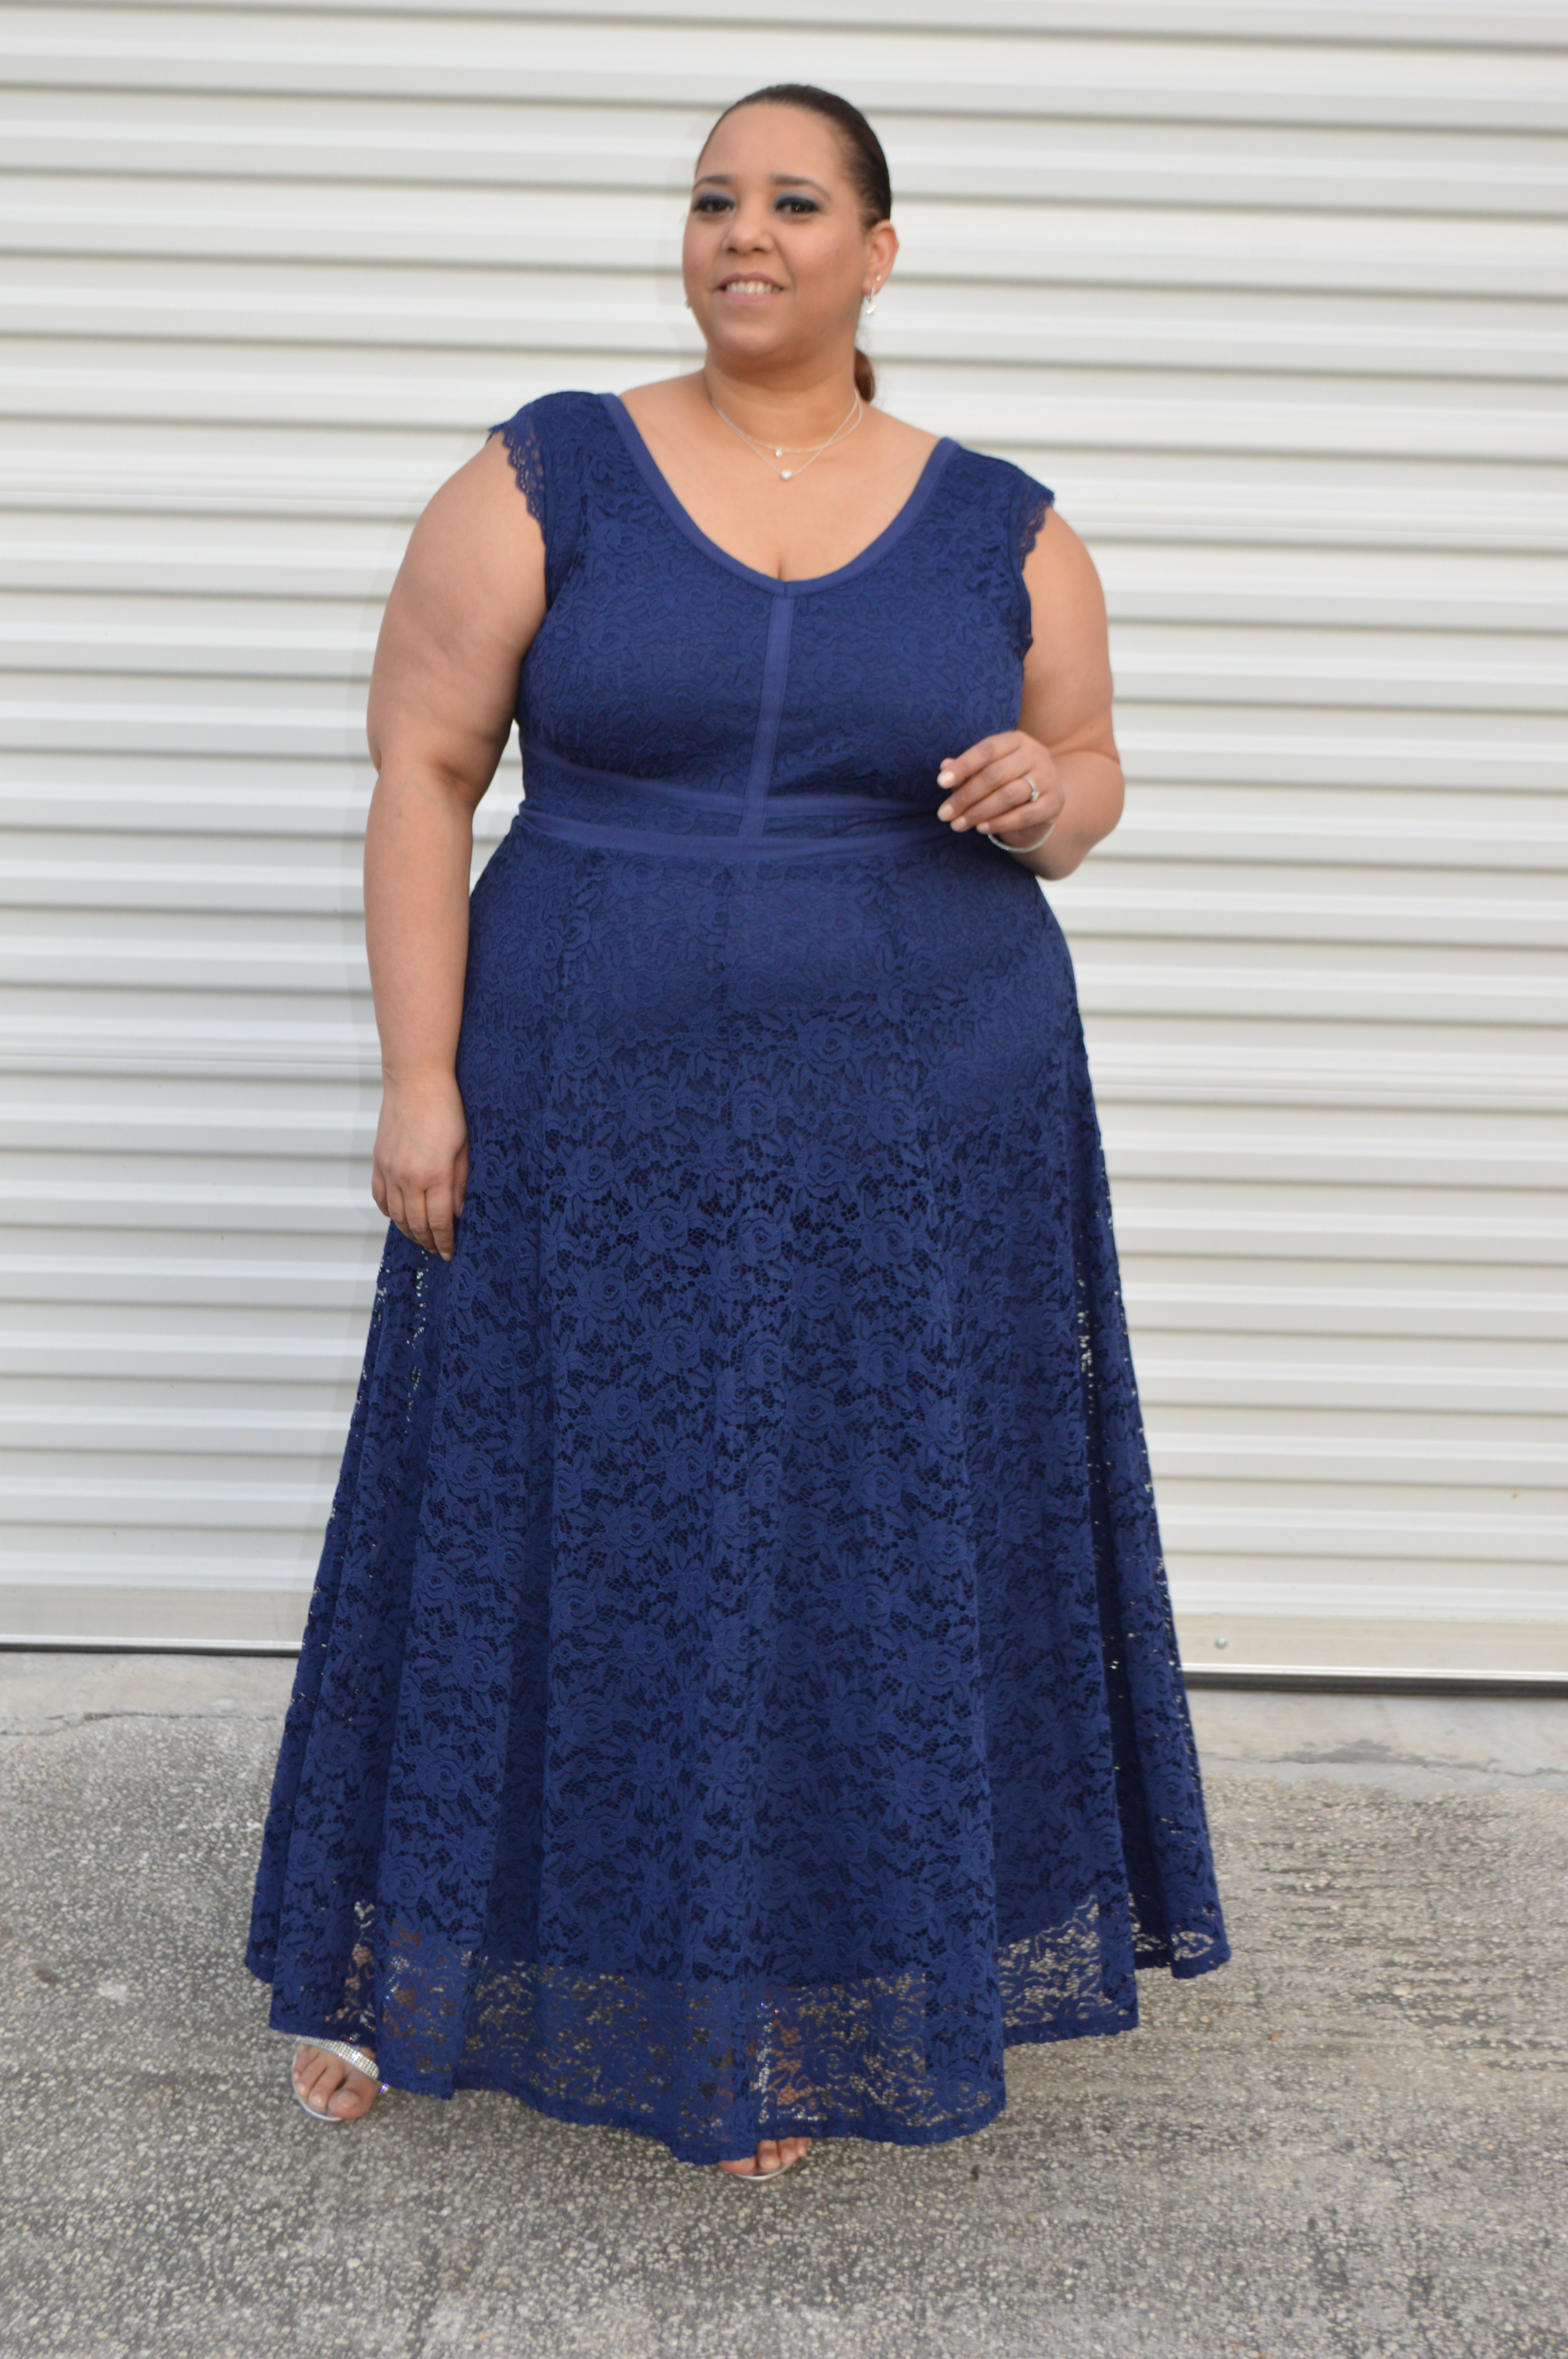 e5c77cf17083 Look Of The Day  Navy Blue Lace Maxi Dress From Torrid – Estrella ...